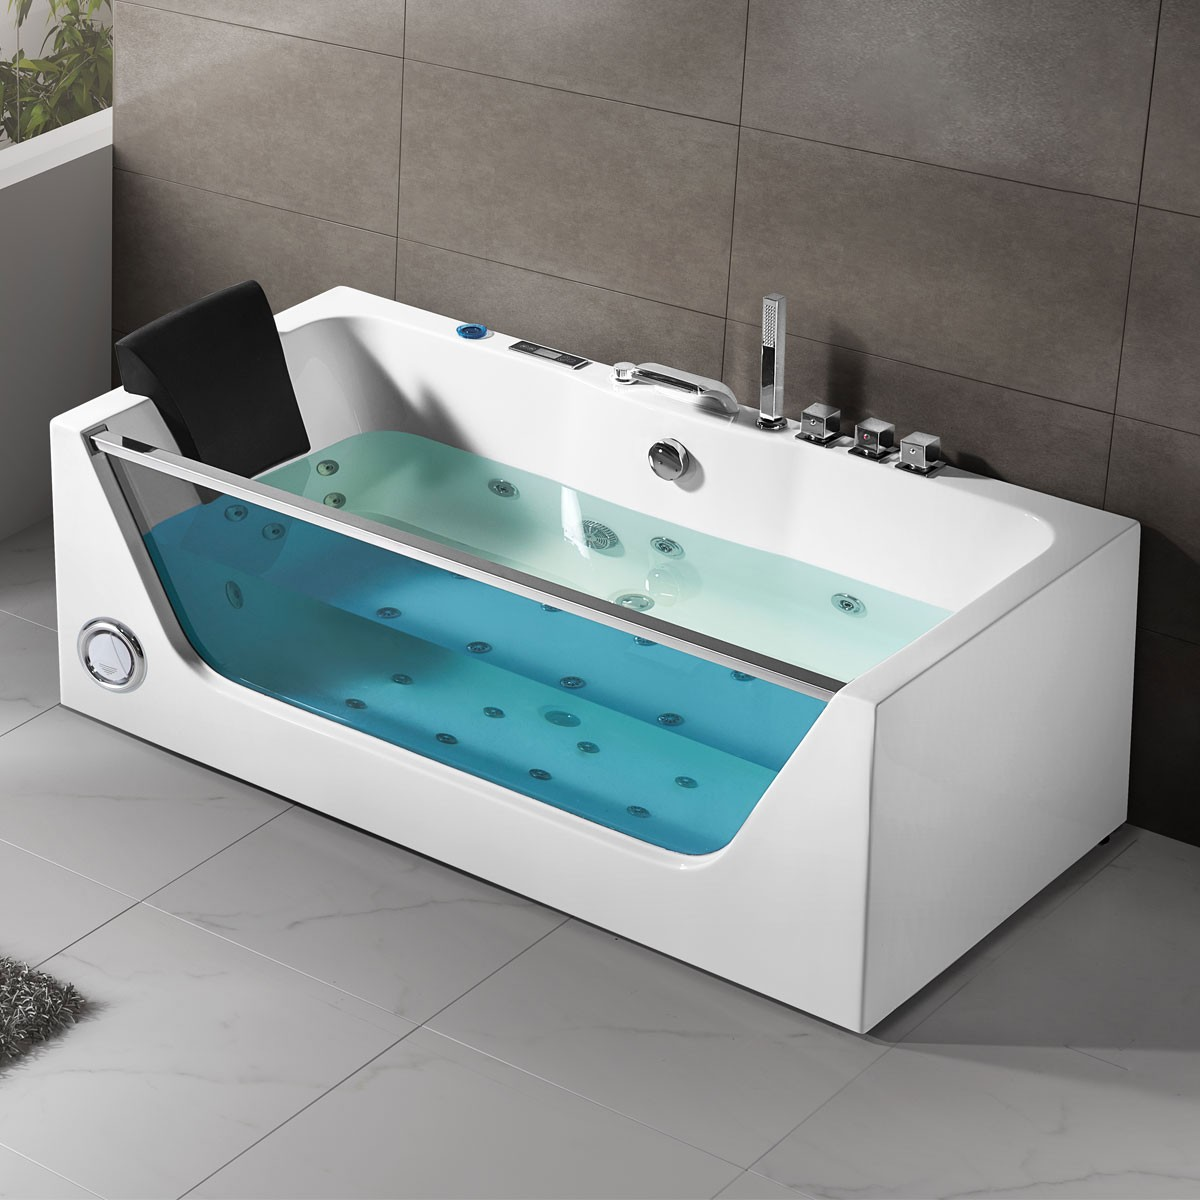 68 In Air Bubble Whirlpool Tub with Computer Control and Light (DK ...